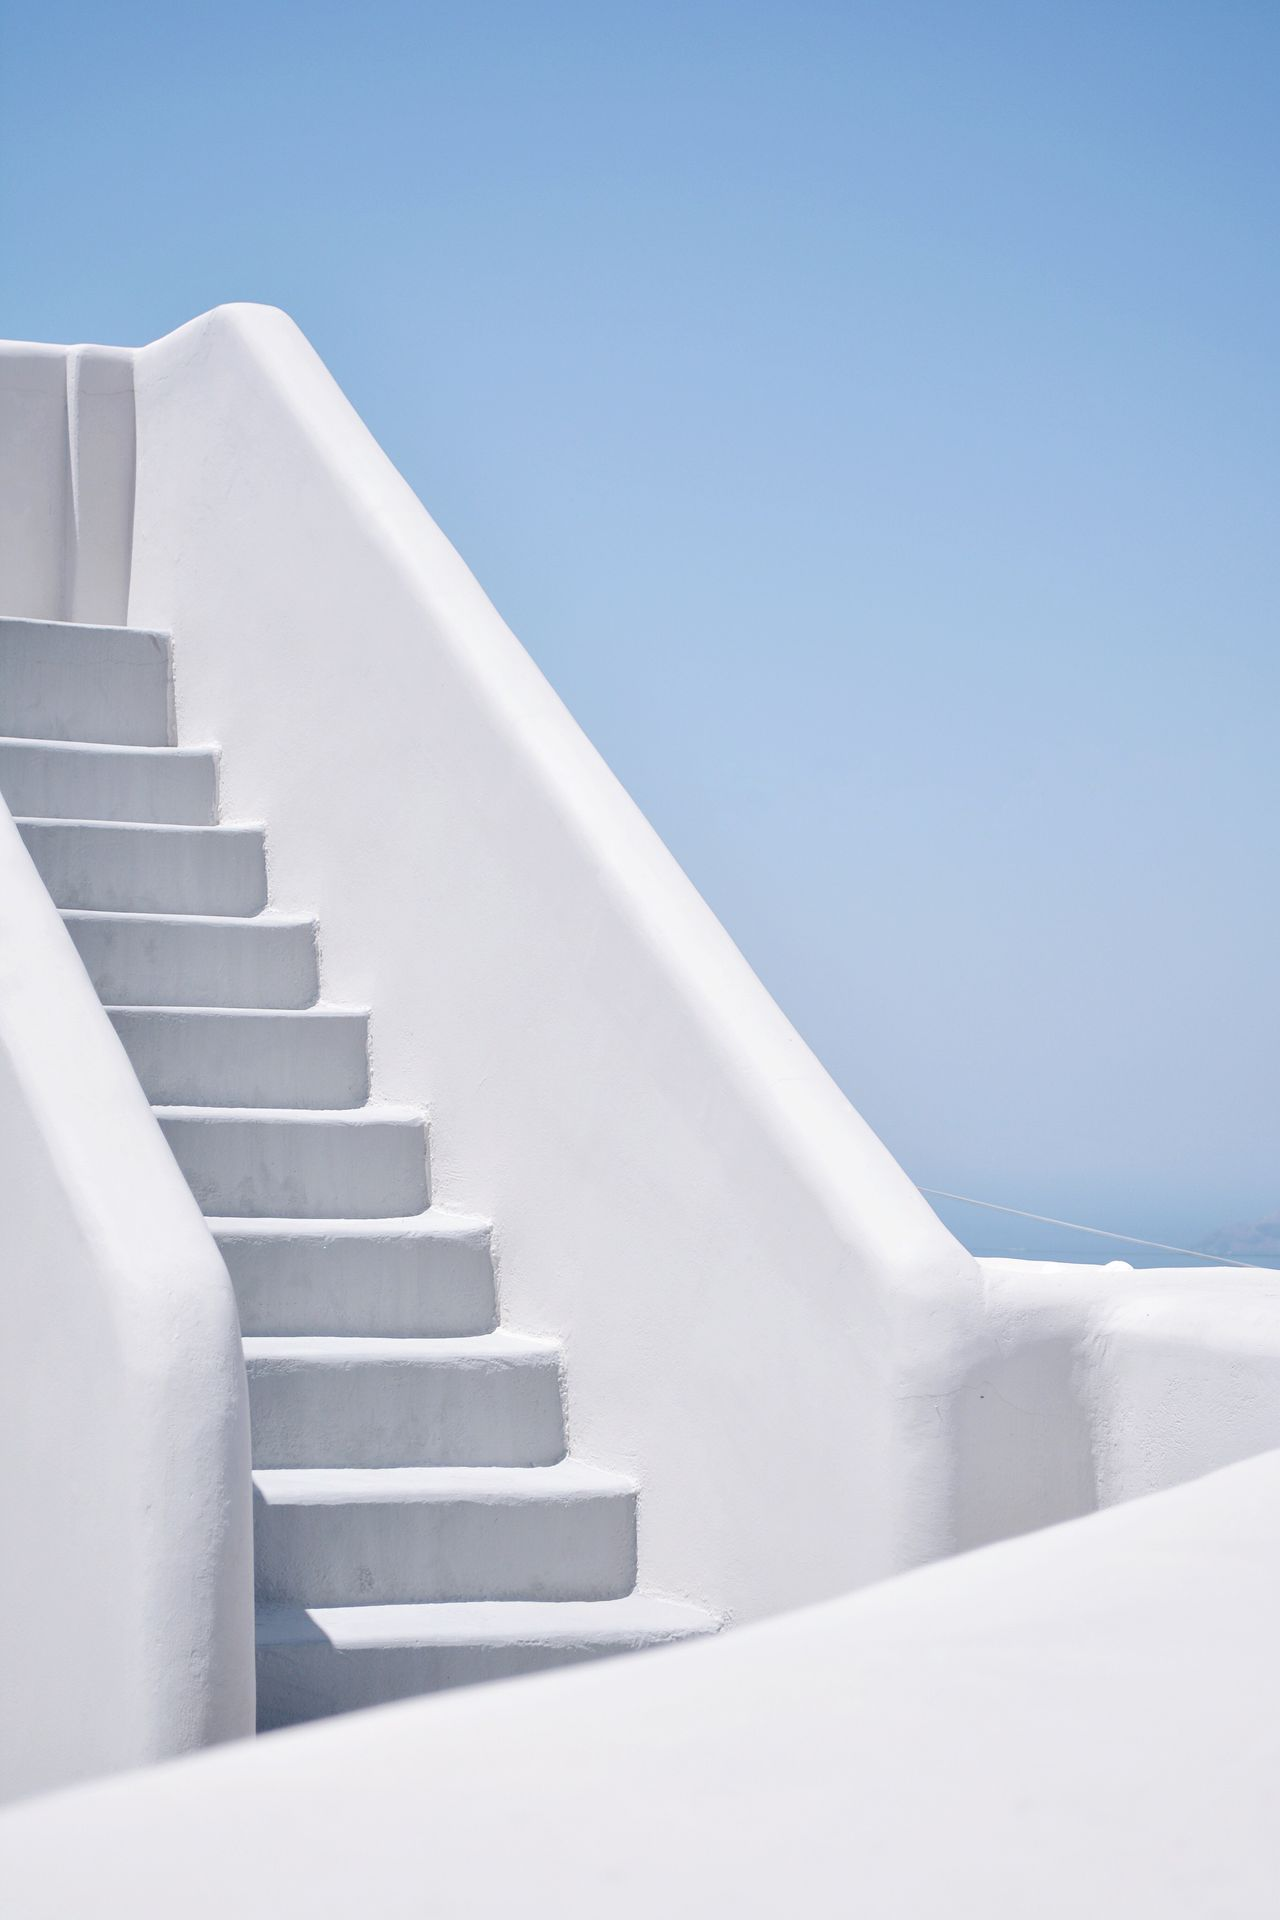 Low angle view of white steps